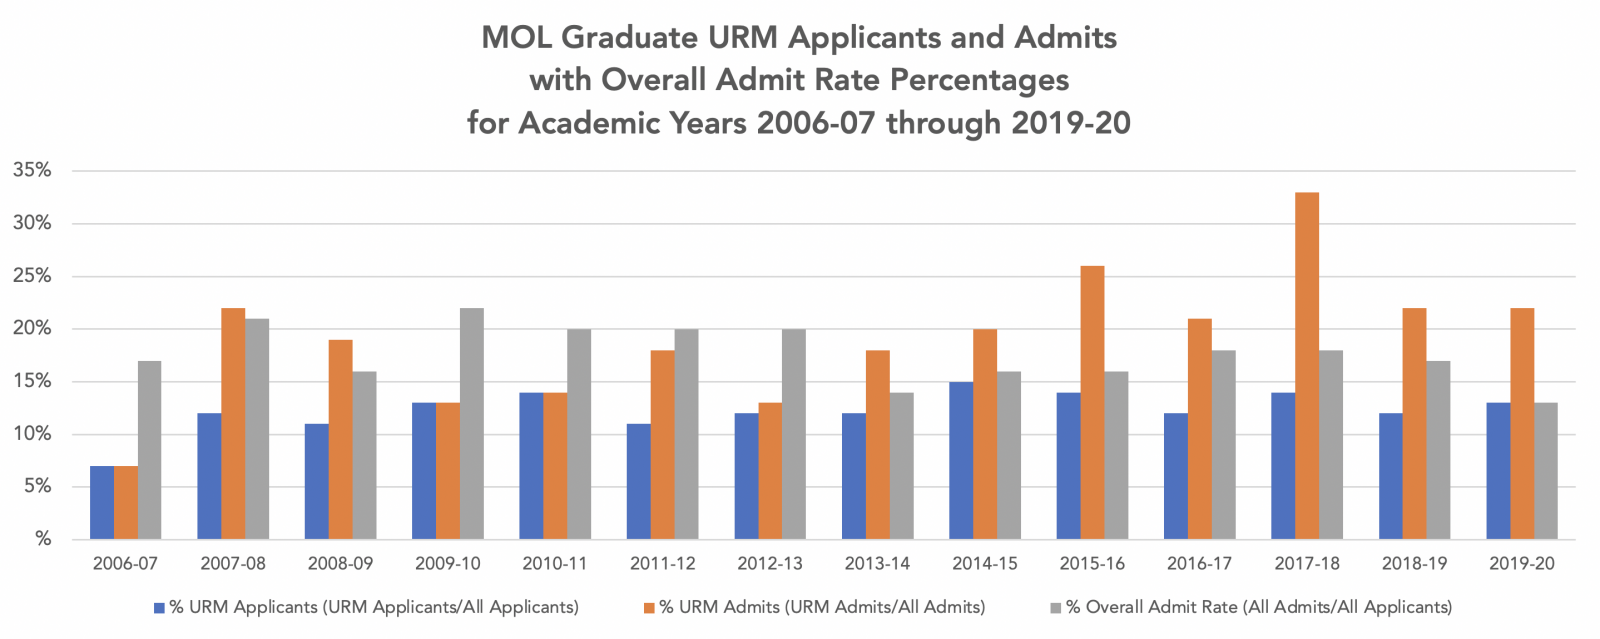 MOL Graduate URM Applicants and Admits with Overall Admit Rate Percentages for Academic Years 2006-07 through 2019-20